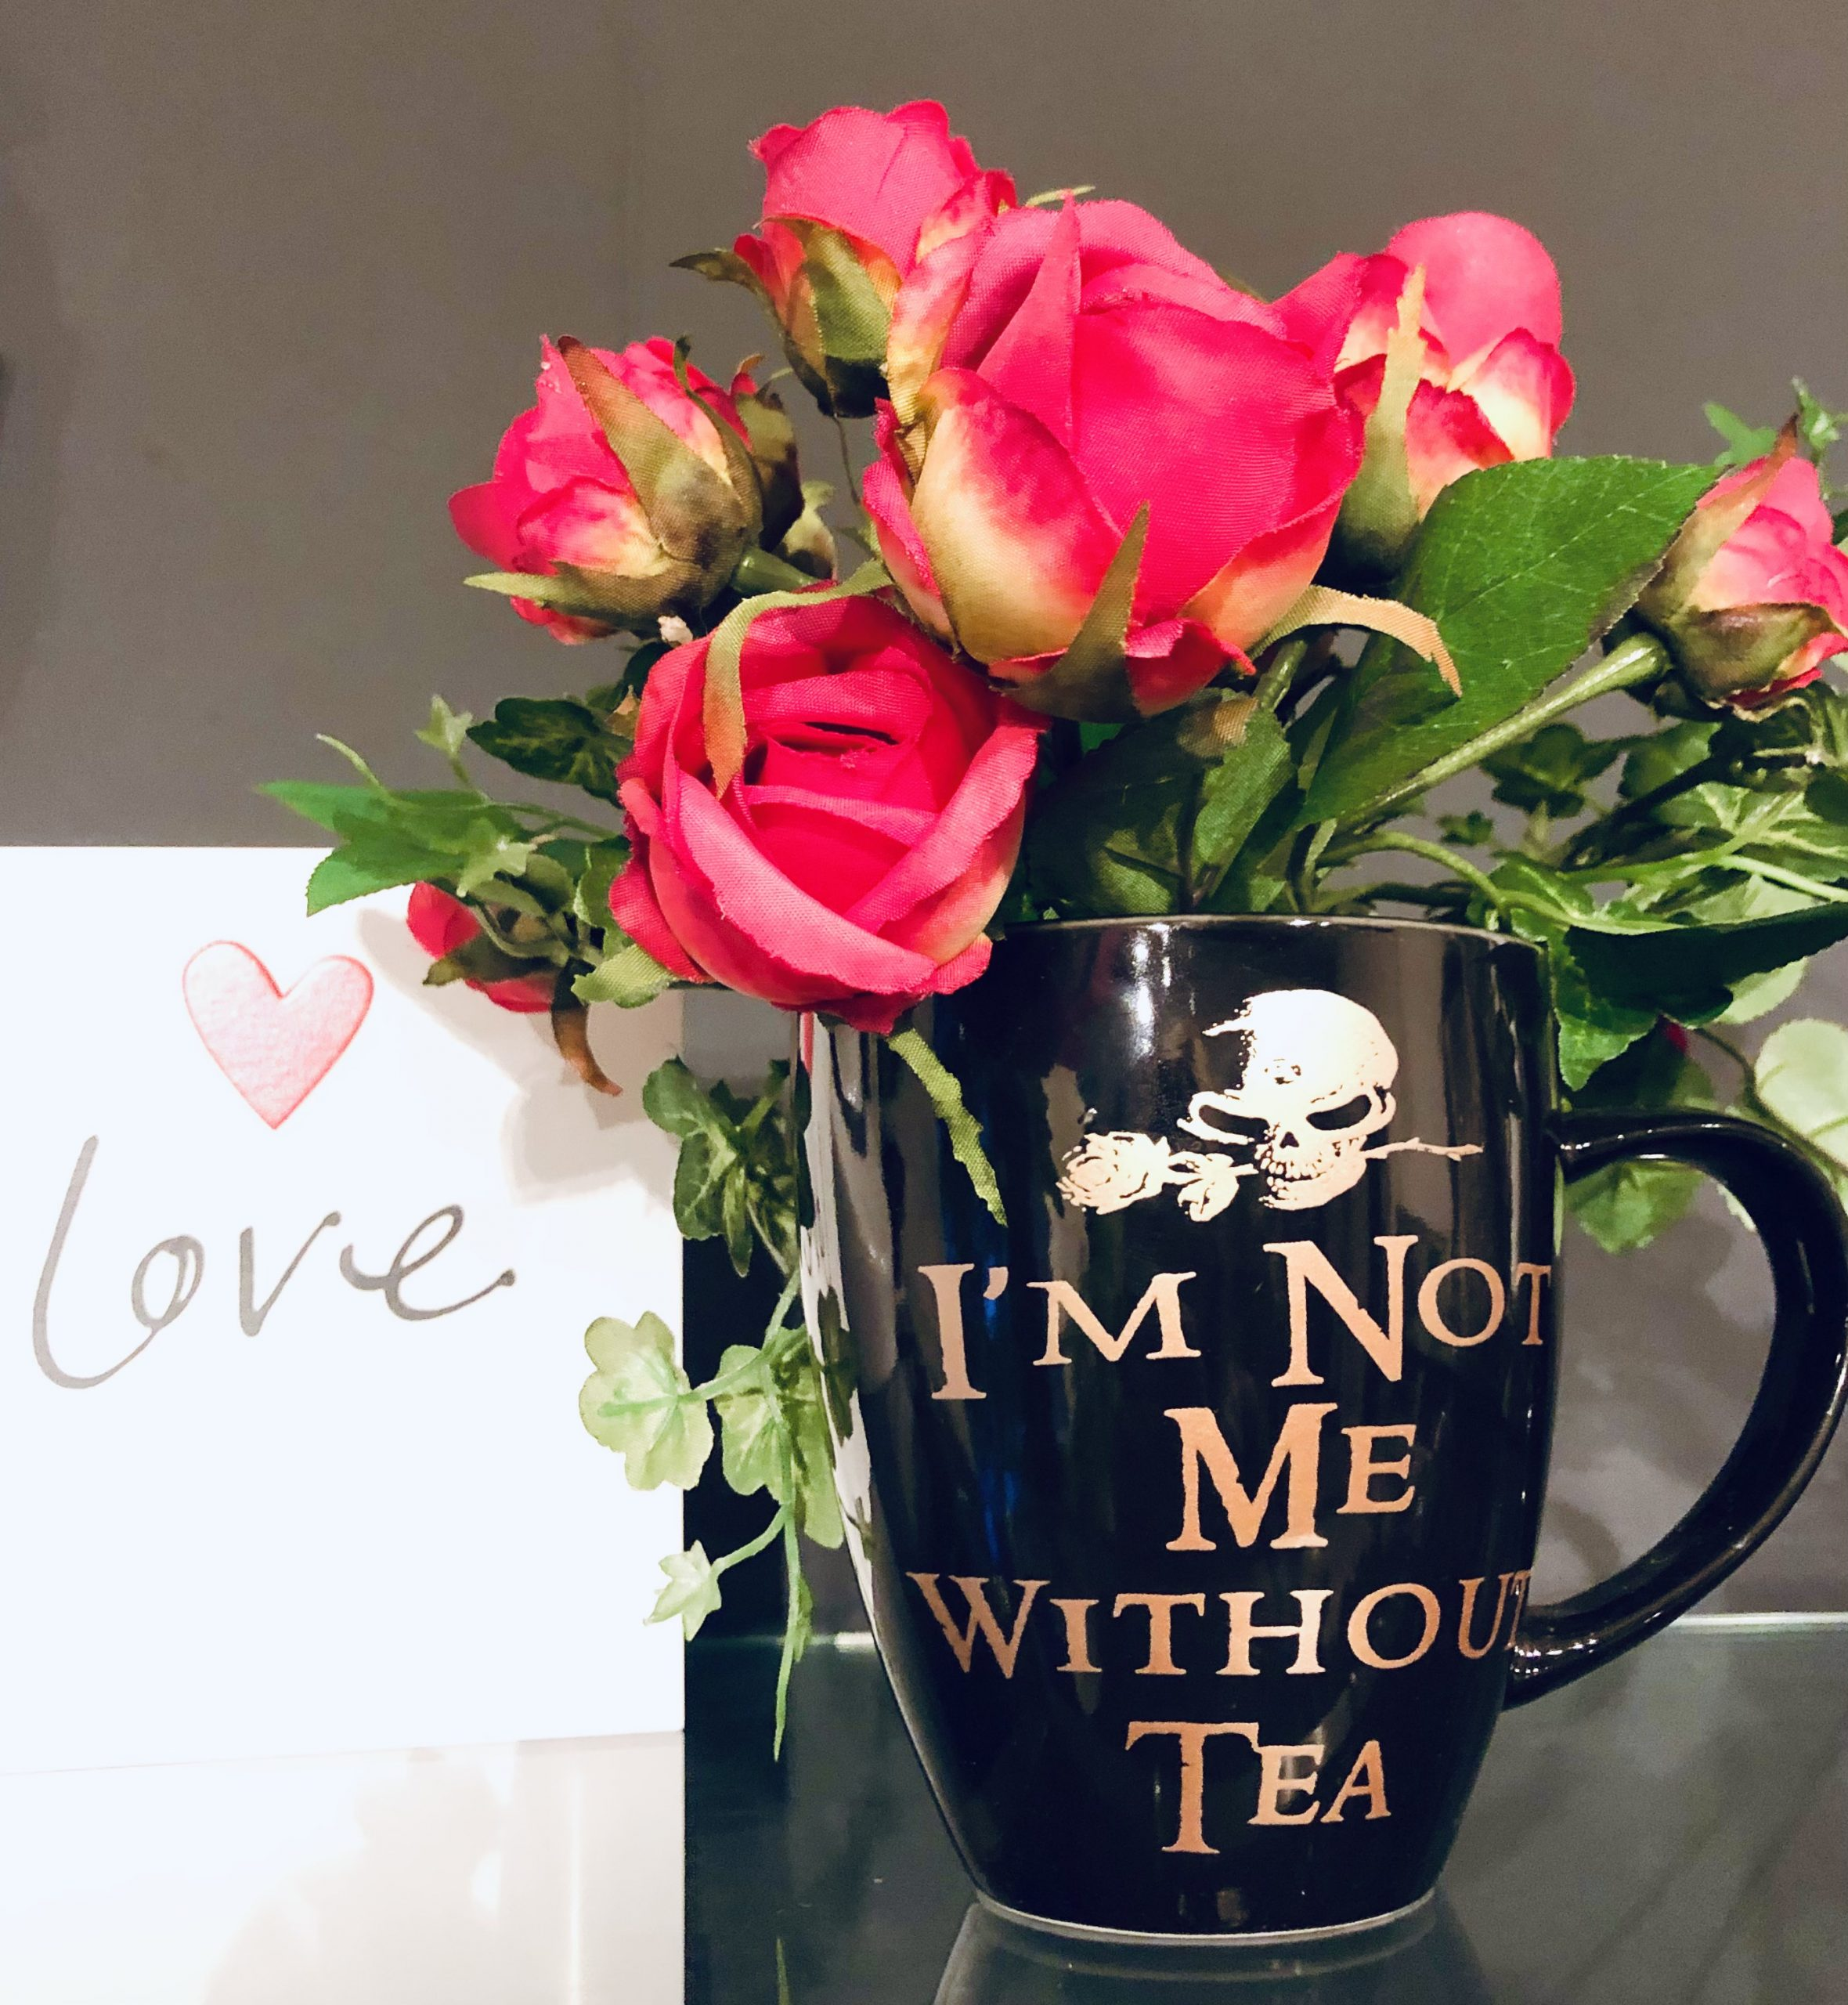 not me without tea